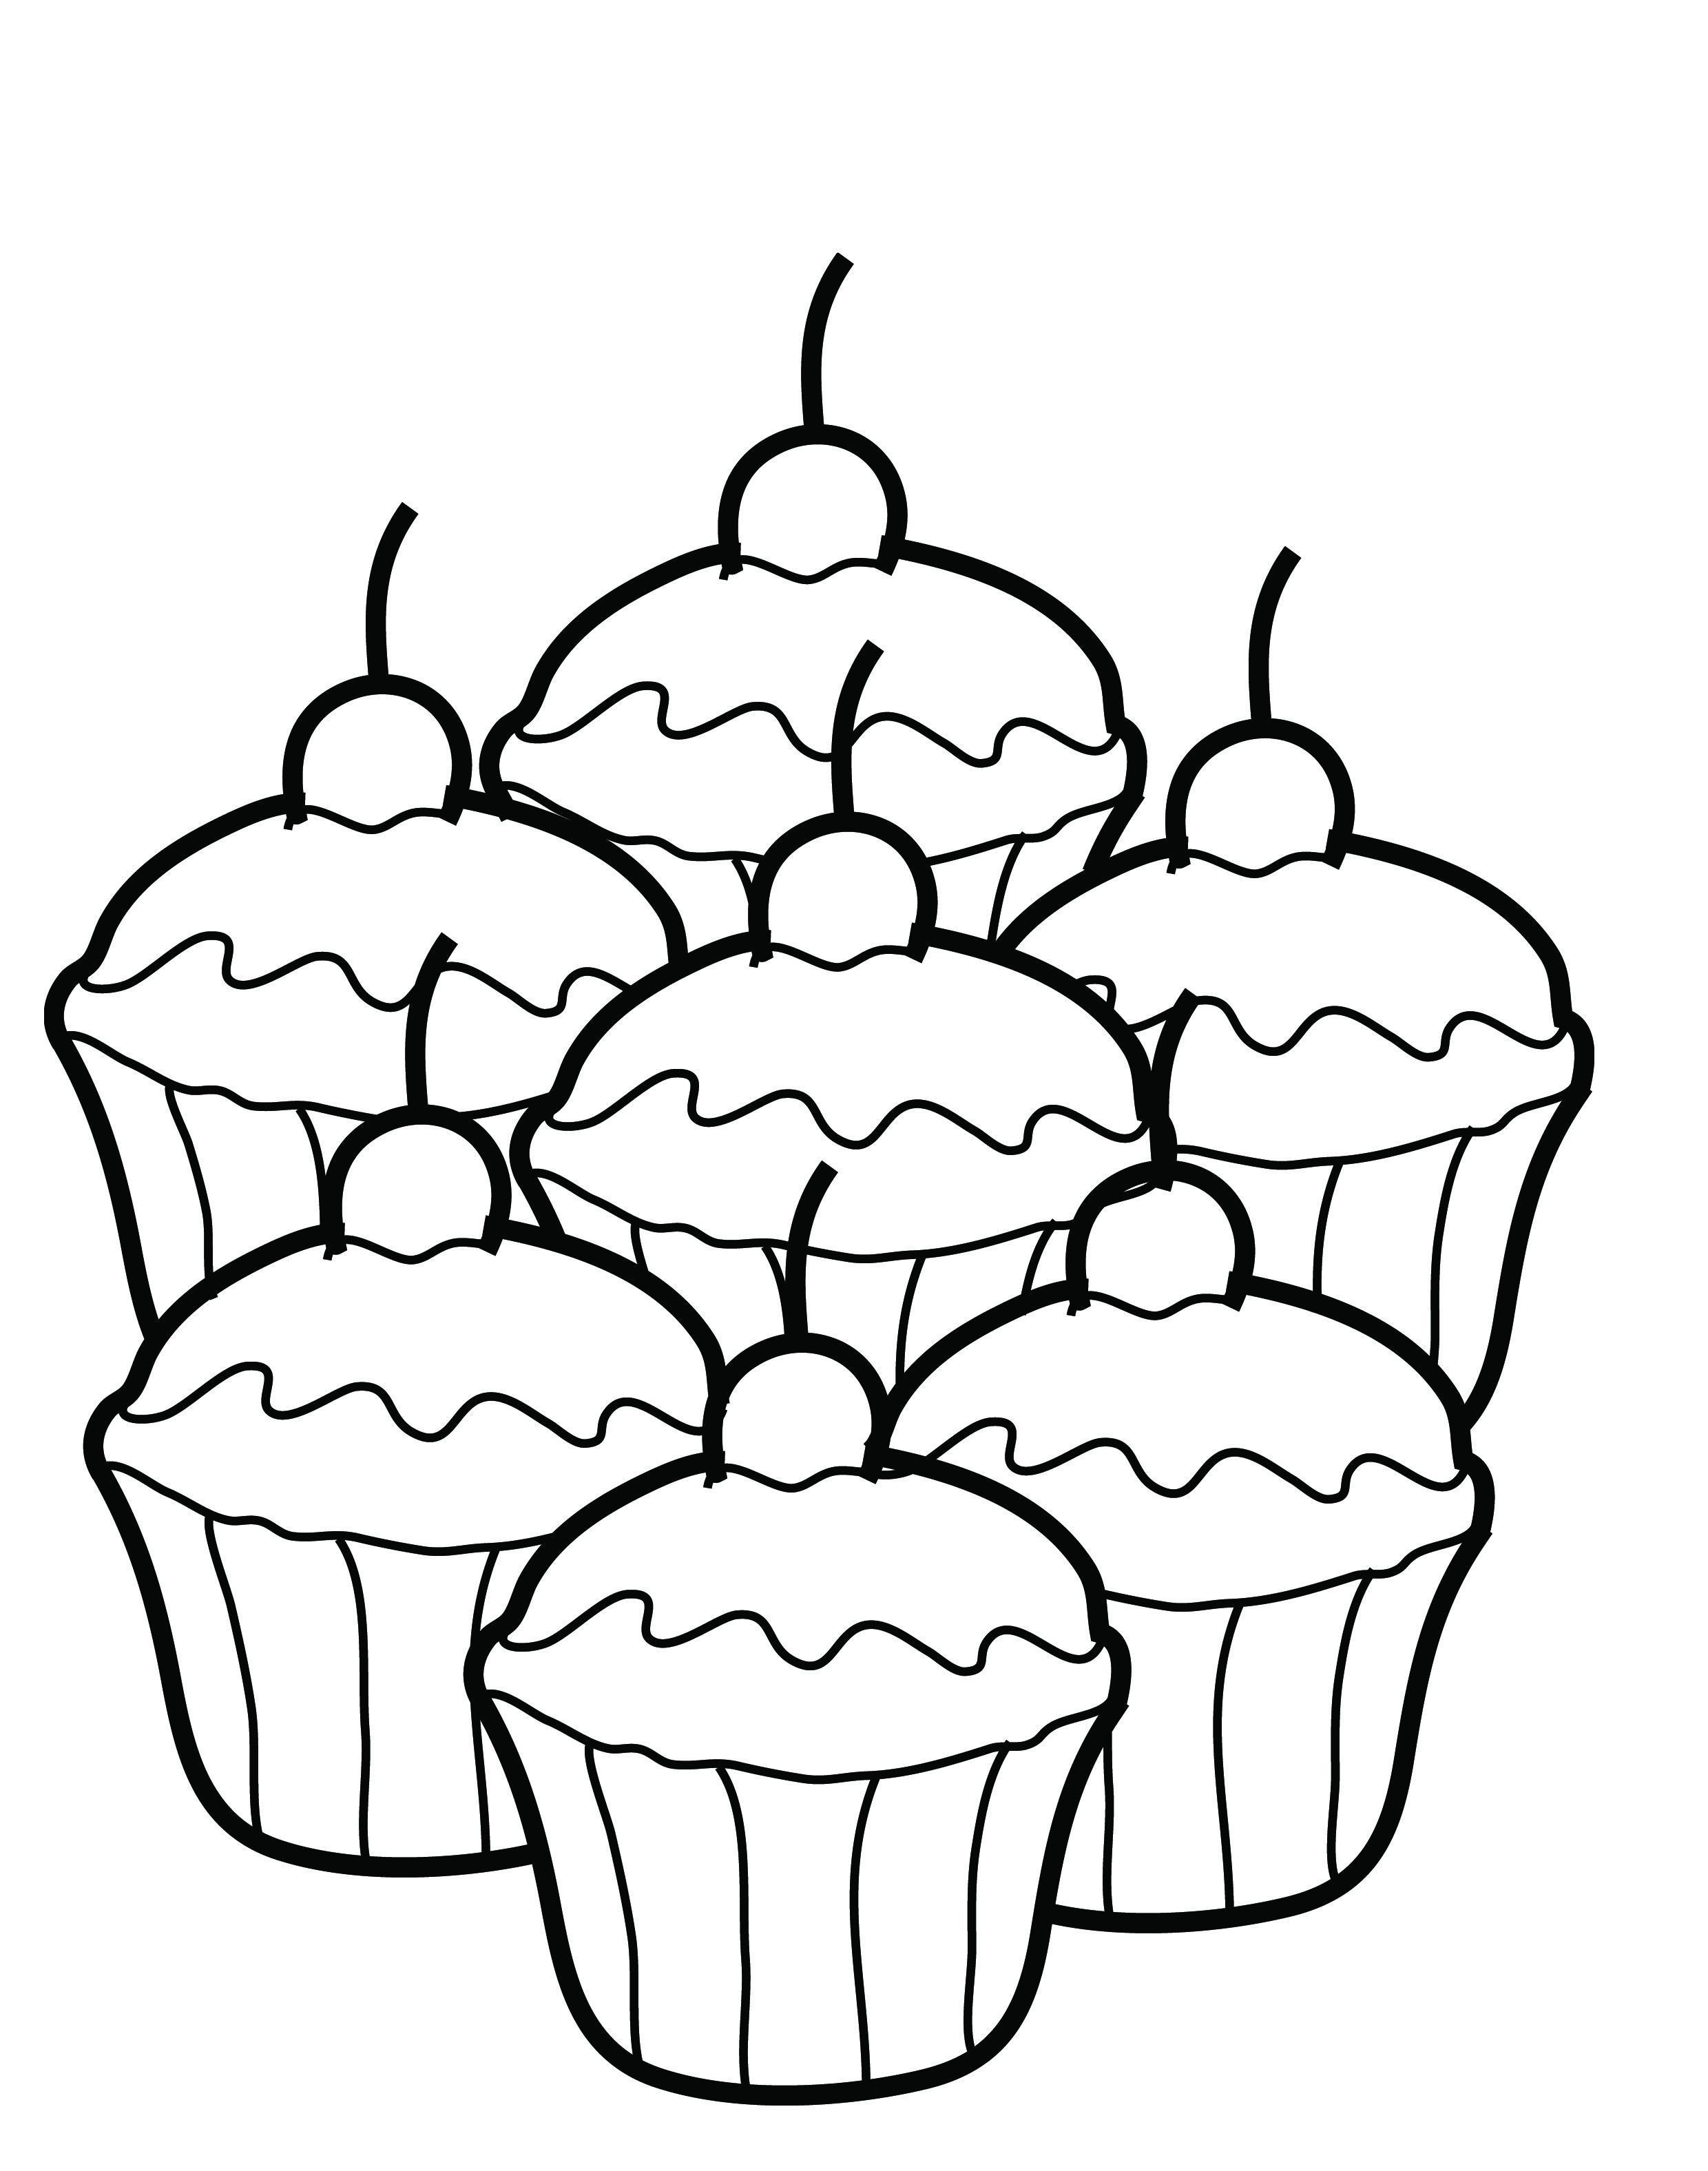 cupcake coloring pages for kids - Coling Pages